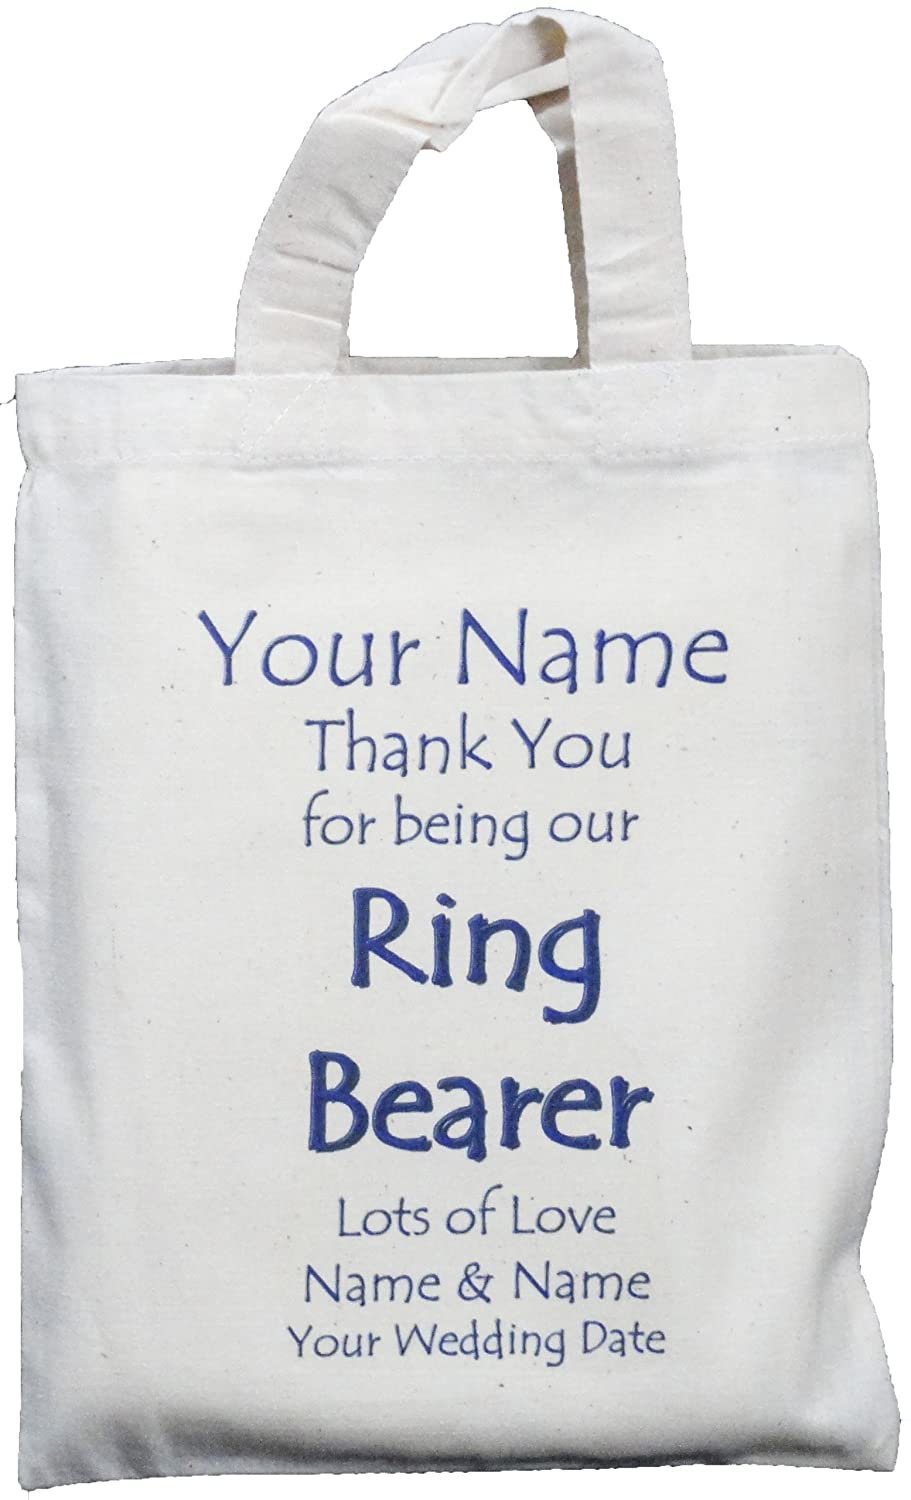 0718467e8b68b Personalised - RING BEARER - Small Natural Cotton Wedding Favour / Gift Bag